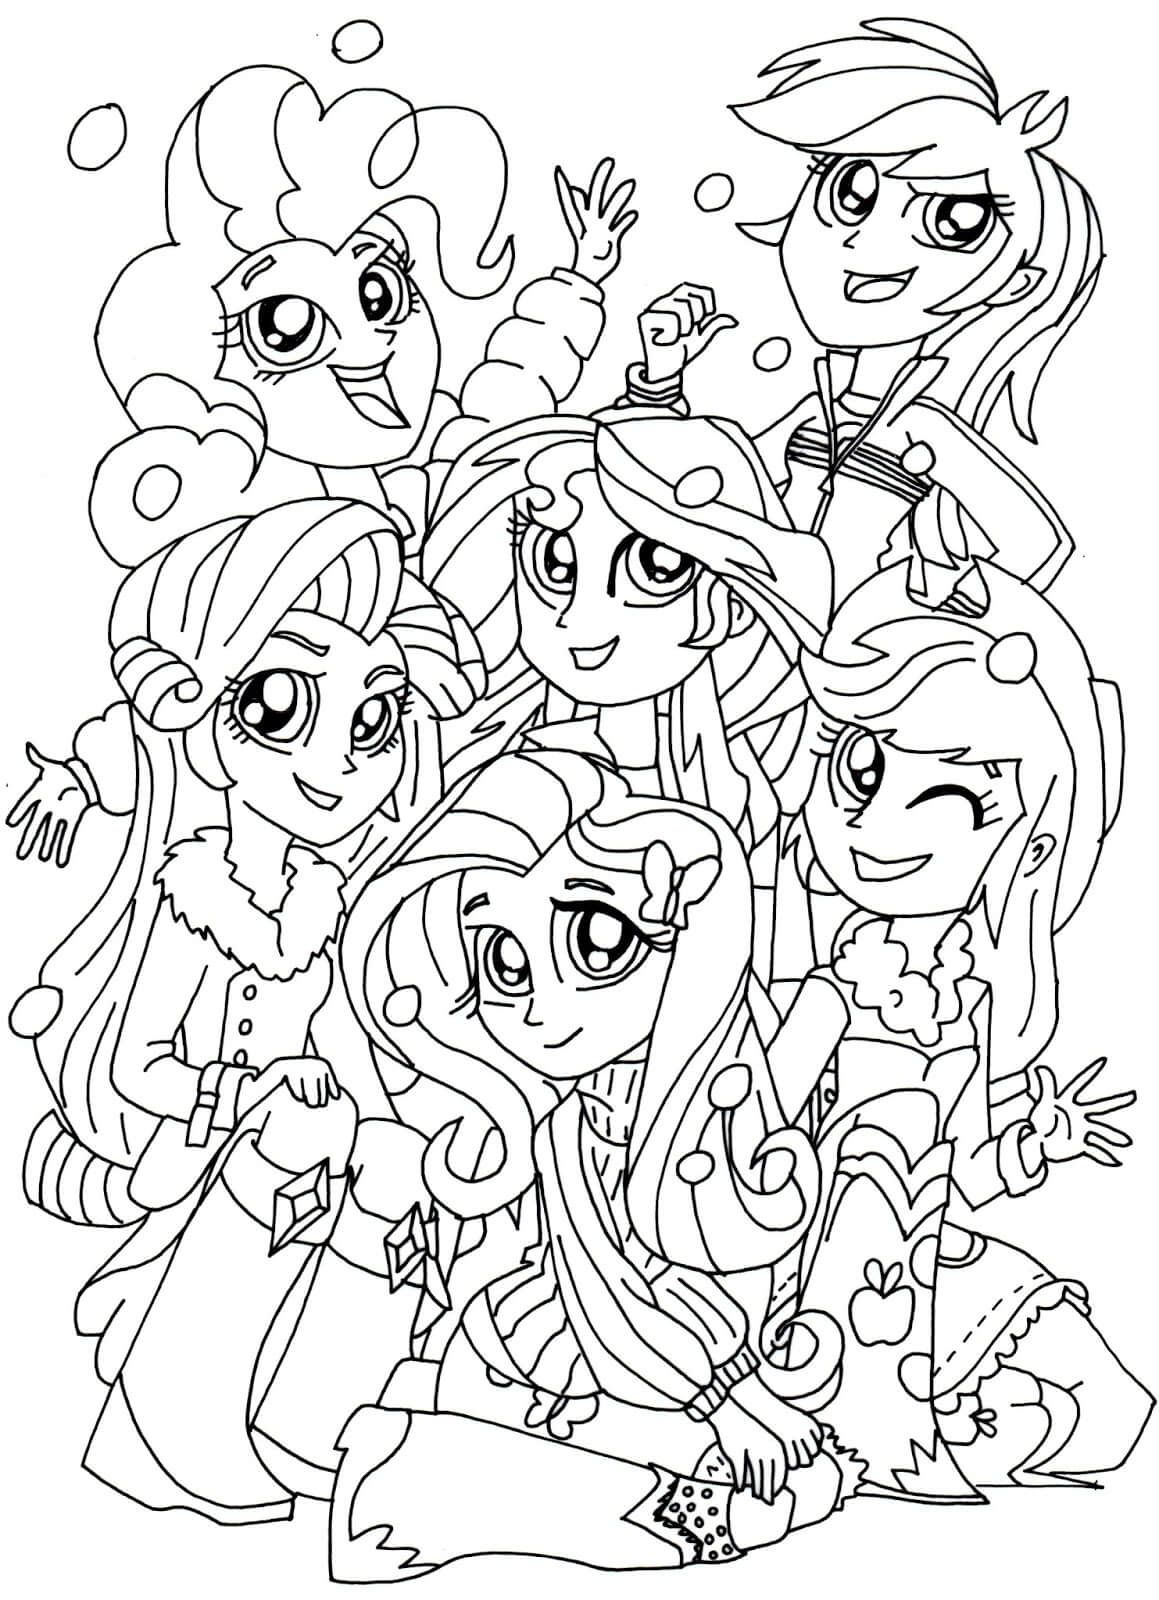 Ausmalbilder Kostenlos My Little Pony : My Little Pony Equestria Girls Coloring Pages Equestria Girls